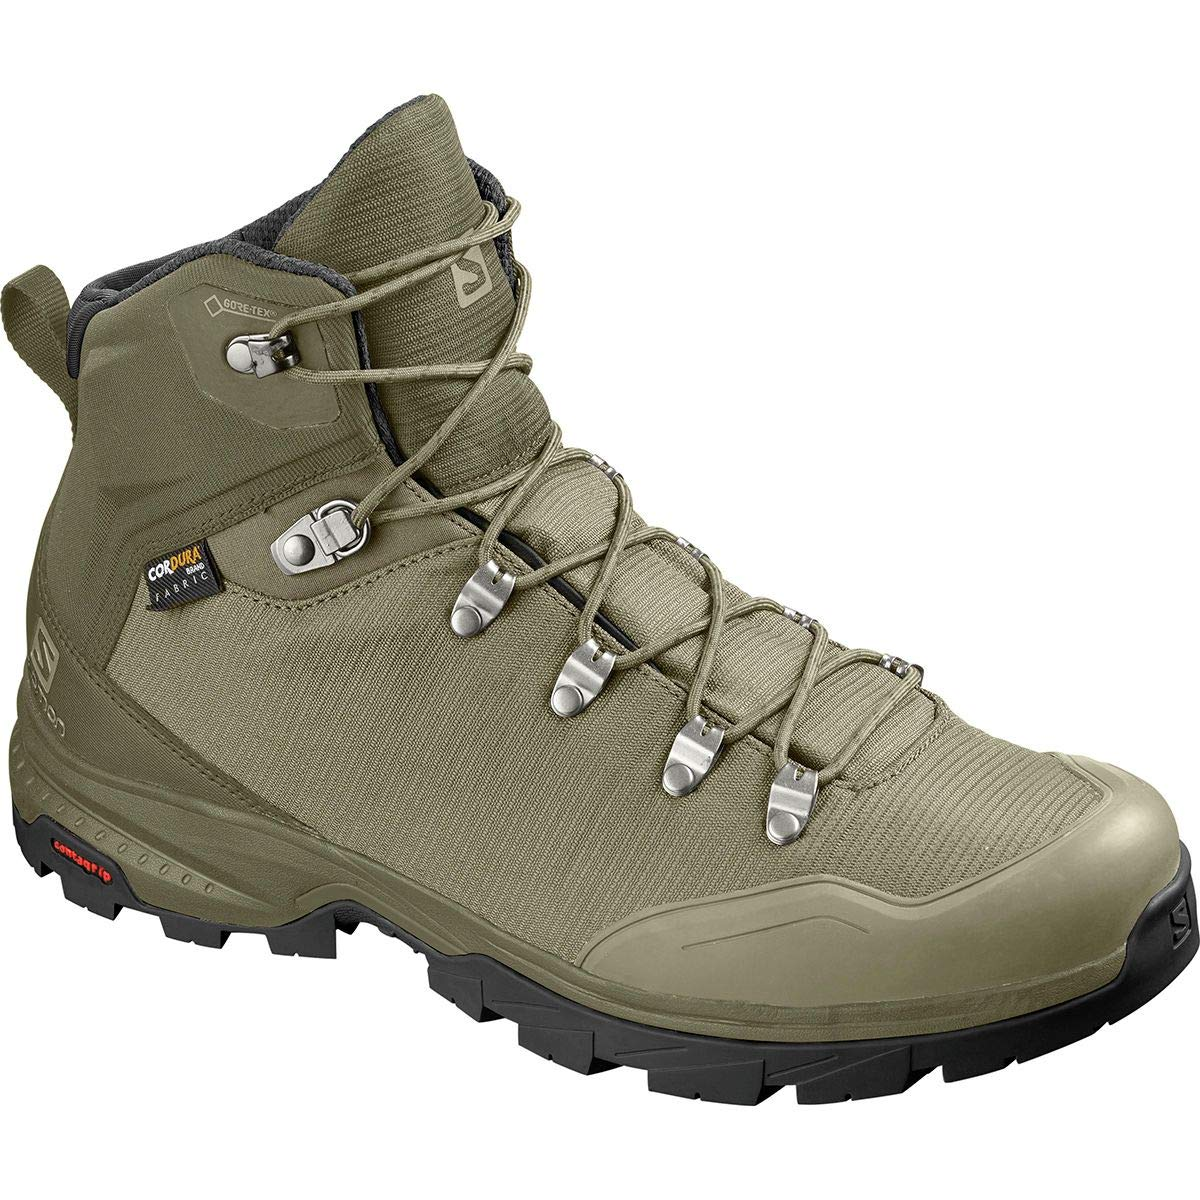 Salomon Men's Outback 500 GTX Backpacking Stiefel -